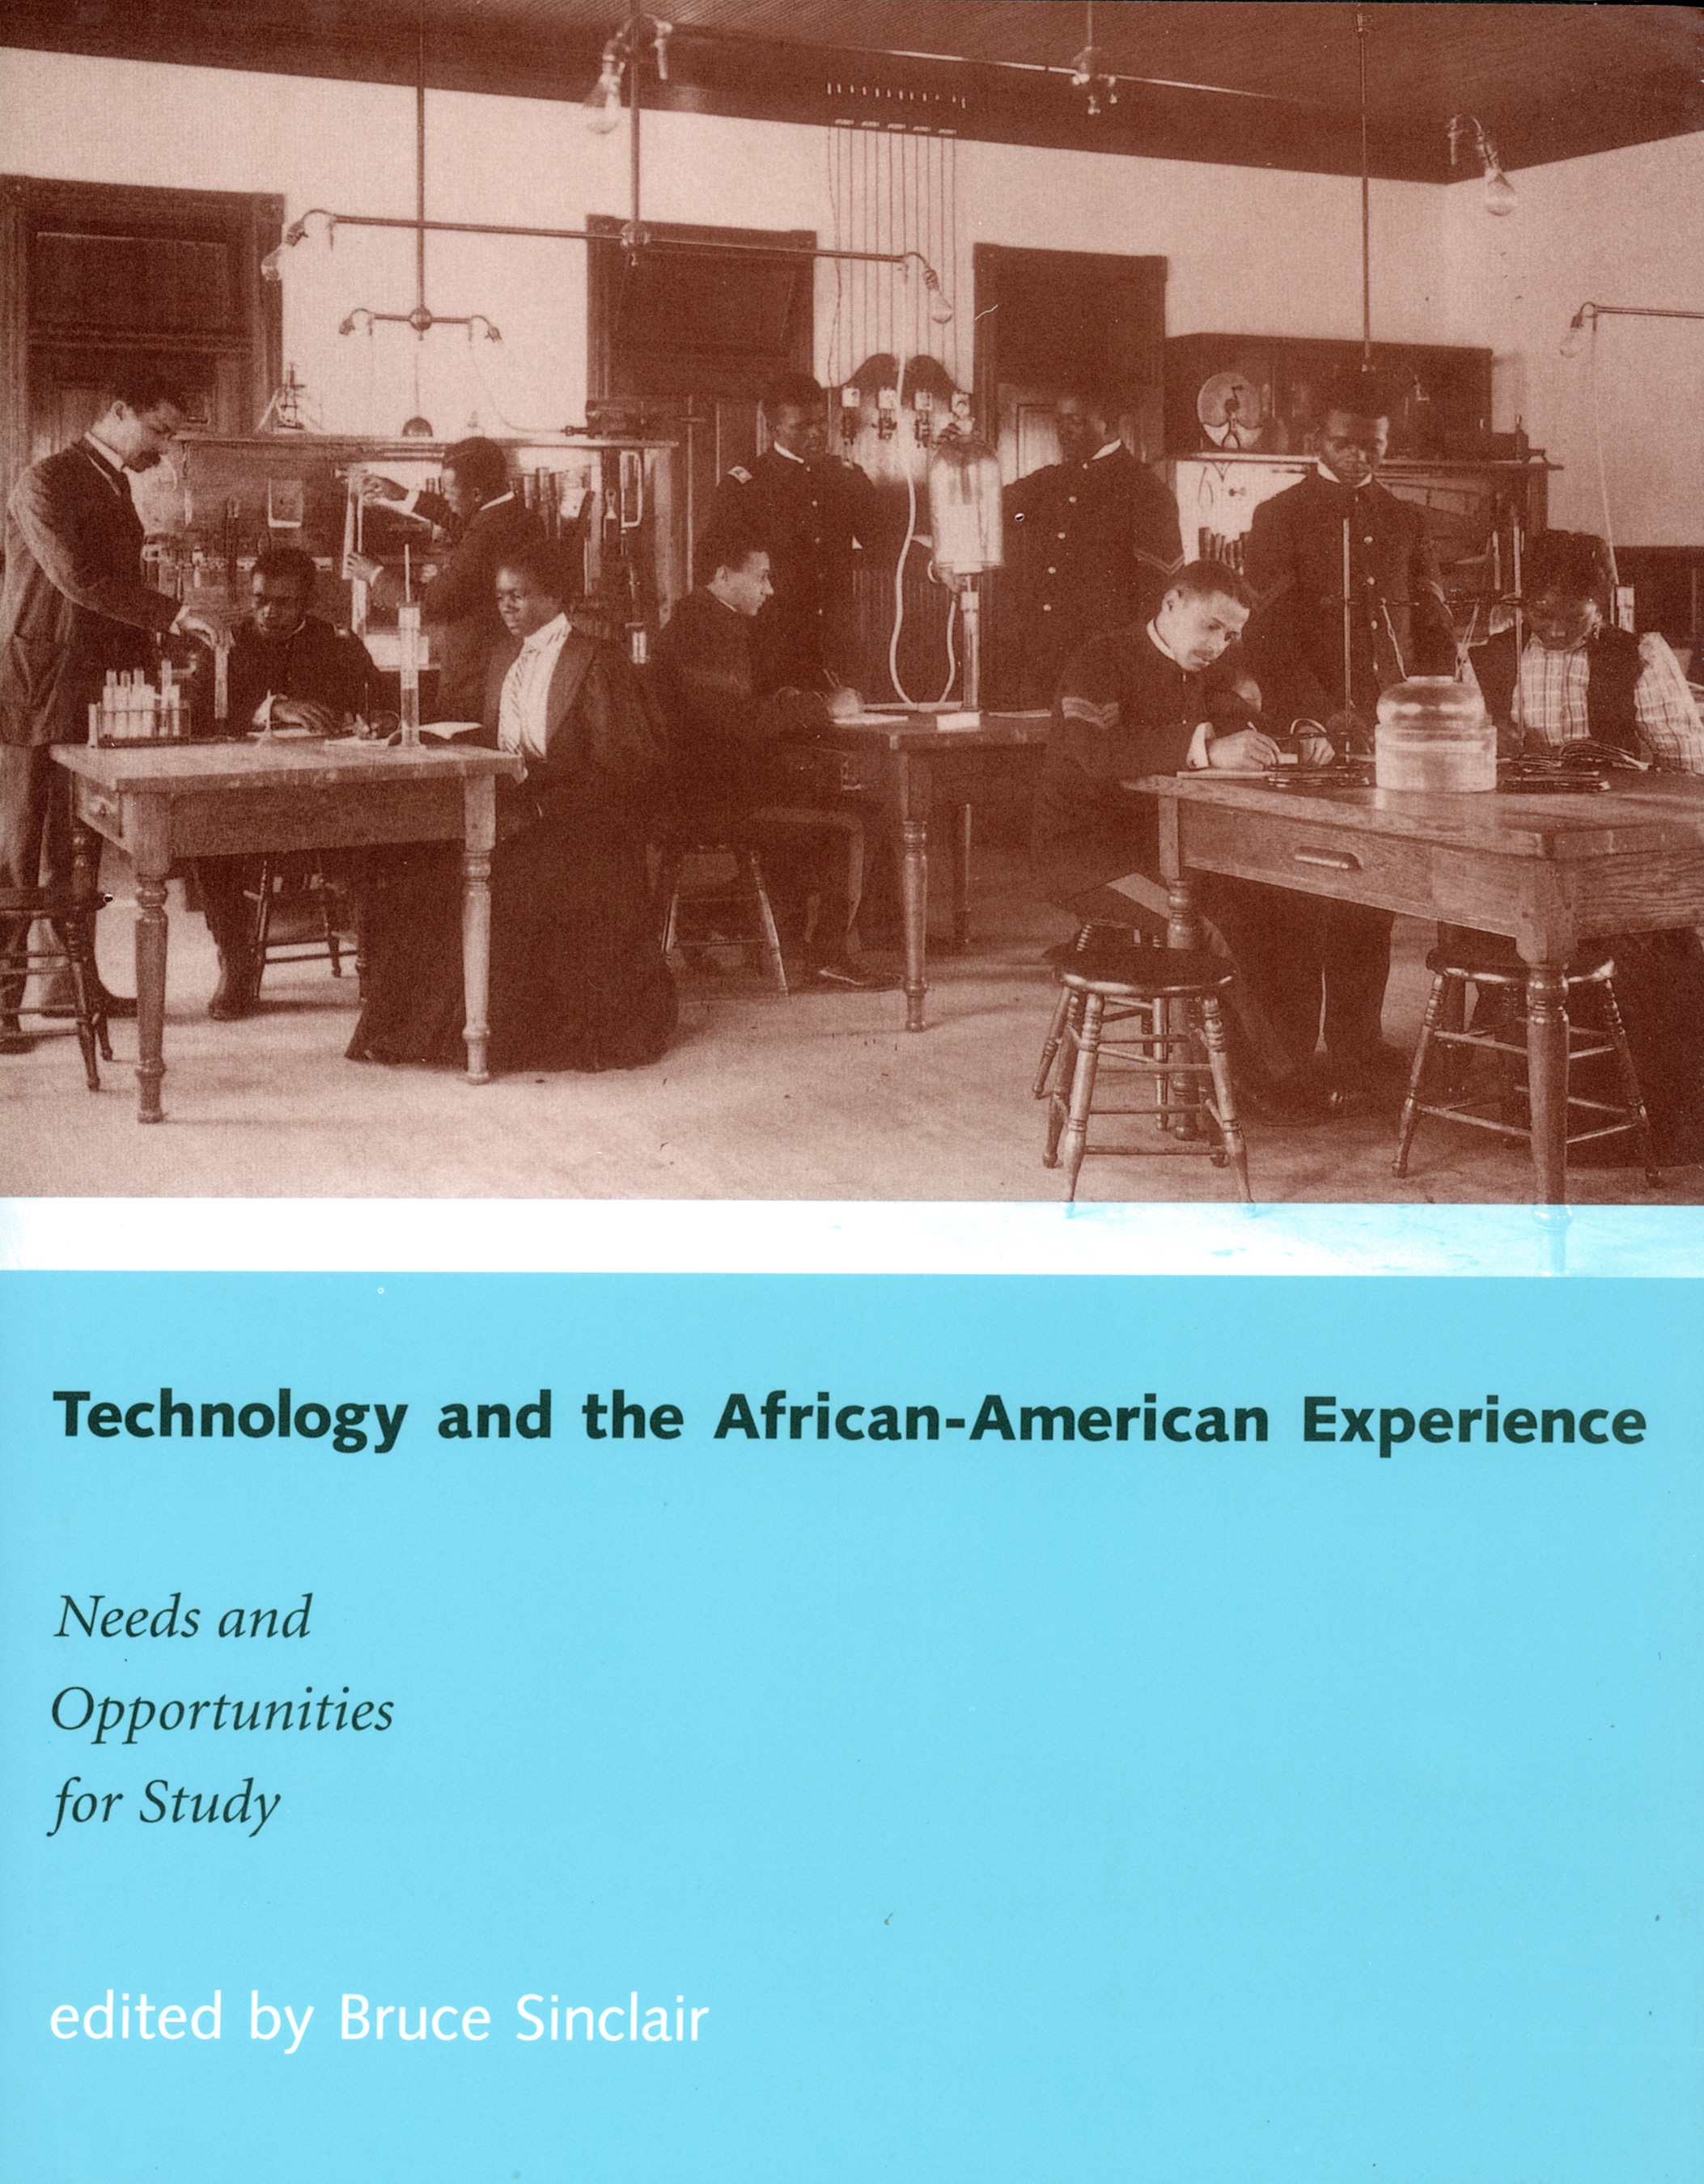 Image of book cover - Technology and the African American Experience